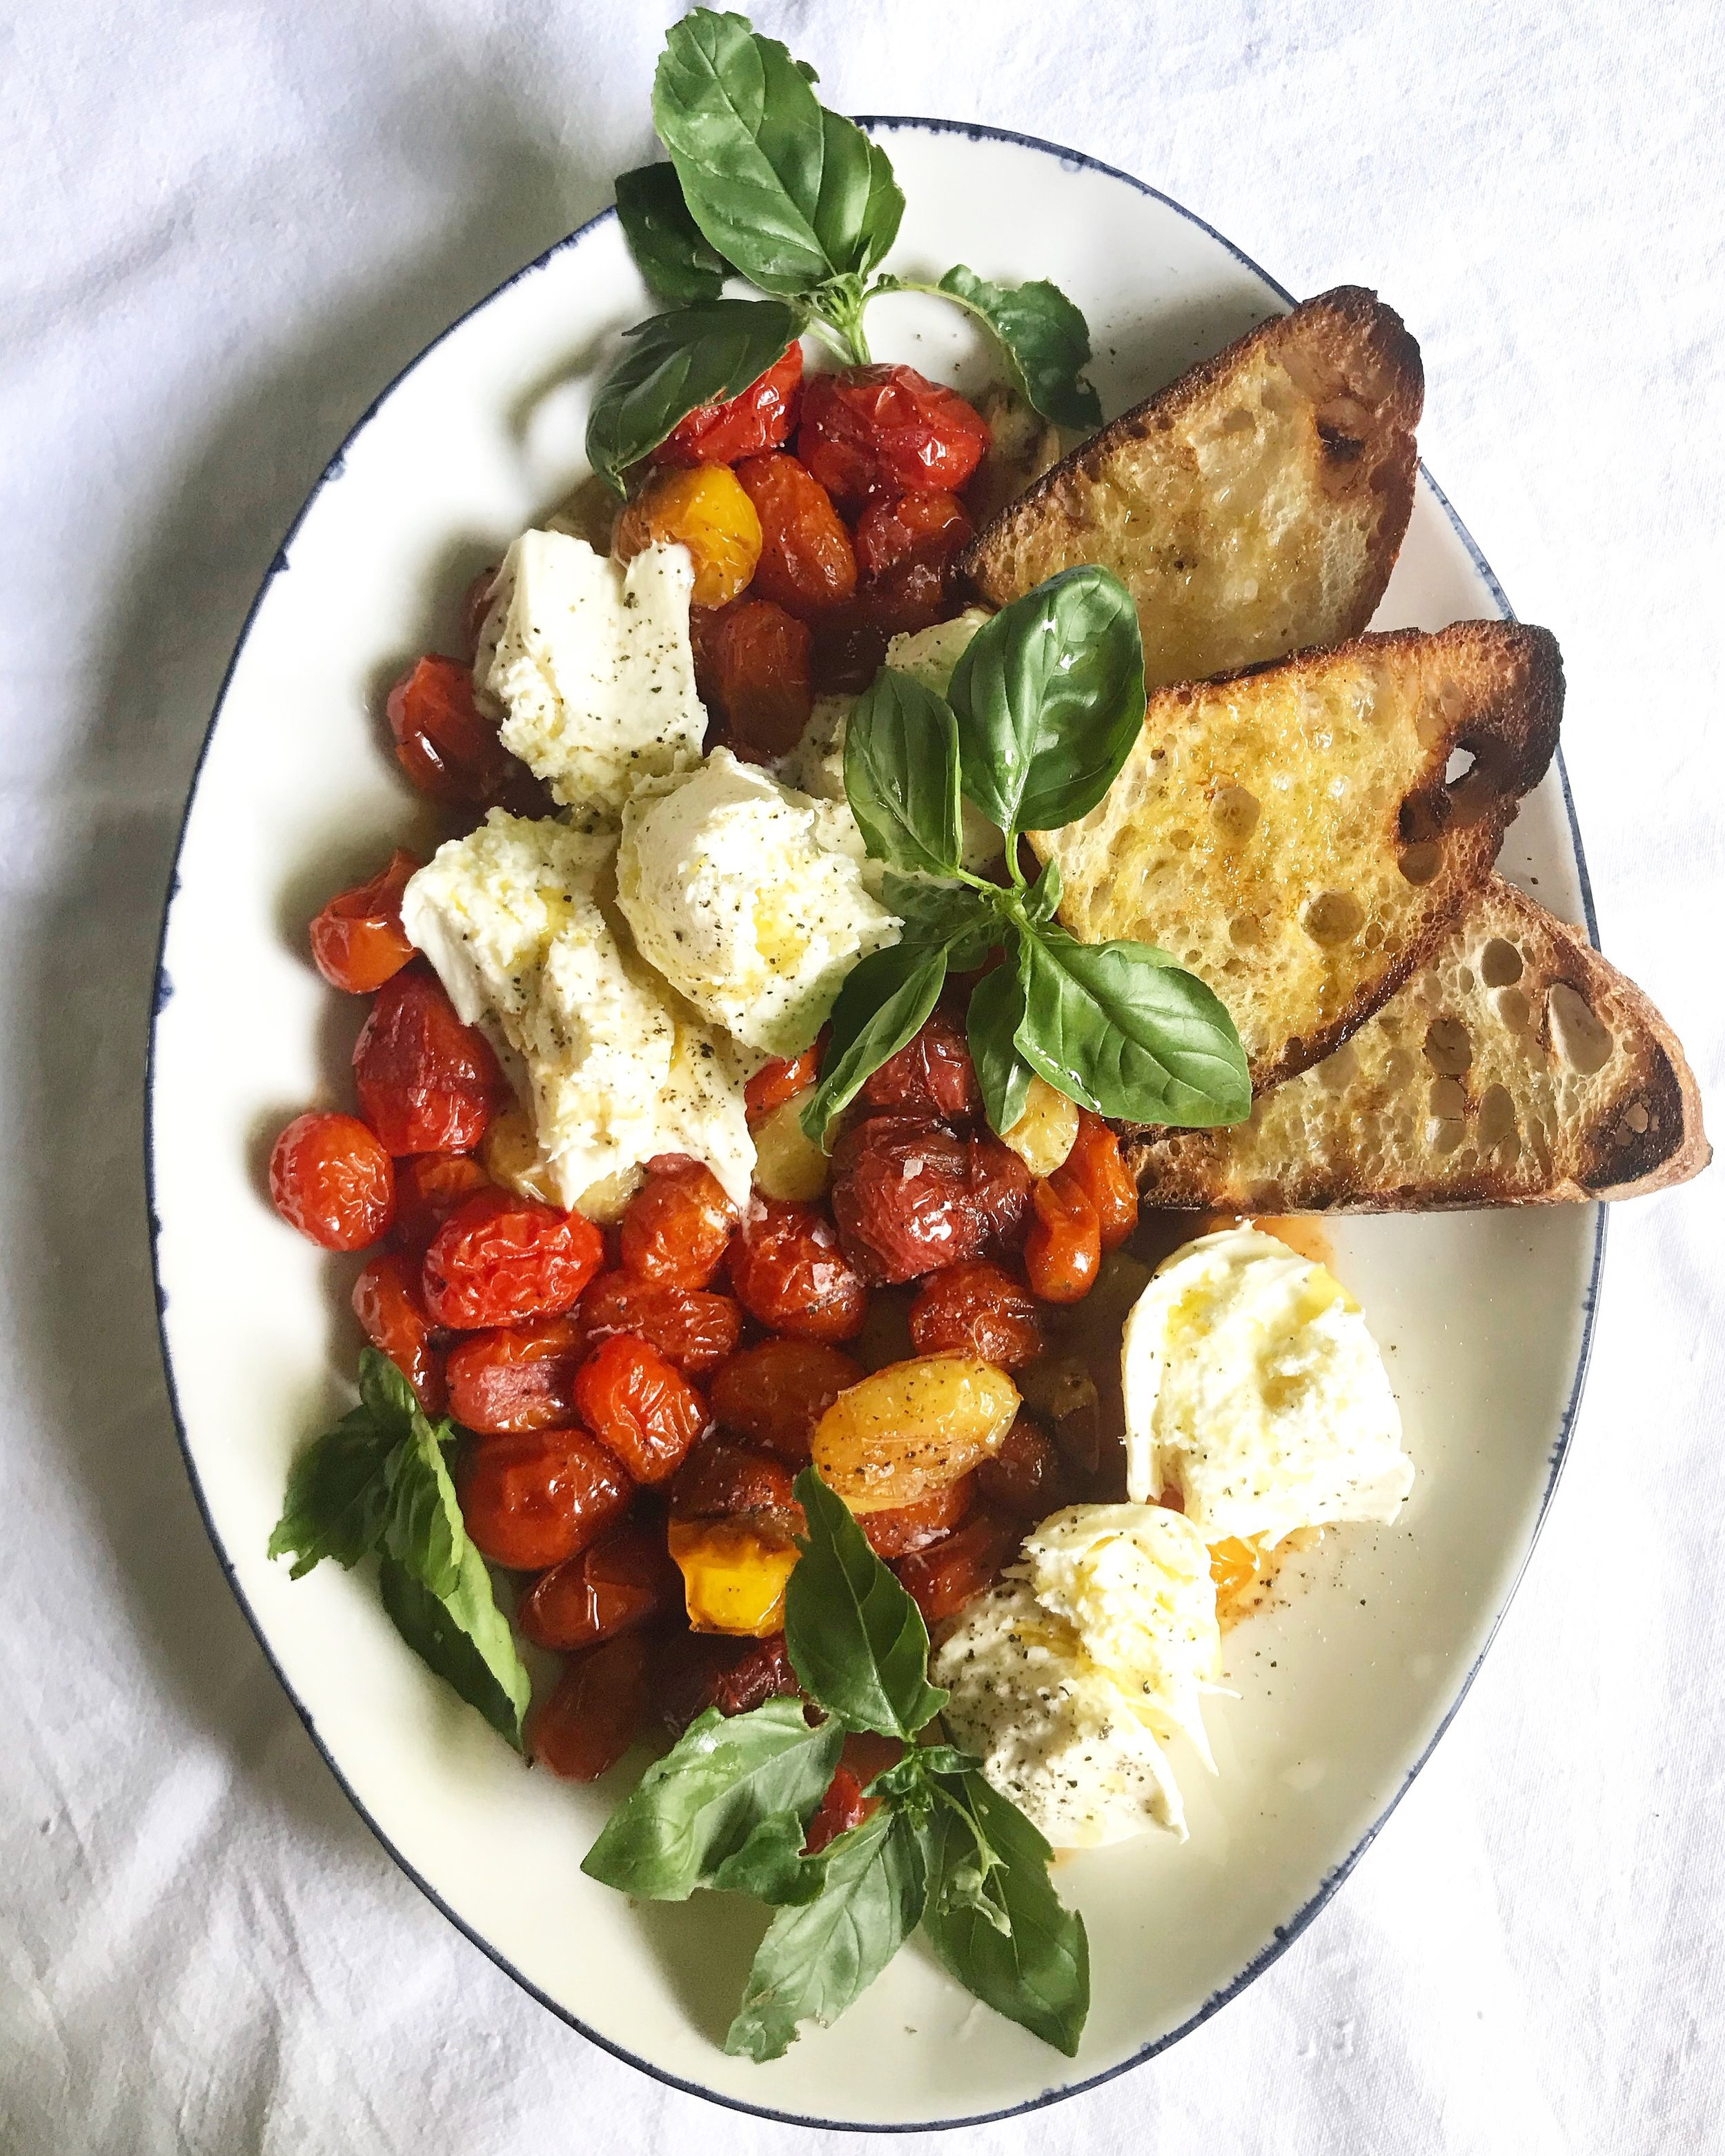 HERE IS WHAT YOU NEED: - 1 1/2 pounds (about) cherry tomatoes (I used multicoloured ones)3 - 4 garlic cloves (large), smashed4 tablespoons of extra virgin olive oilflaky sea saltfreshly ground pepper1 ball (250 g) fresh buffalo mozzarellarustic bread, slicedsea saltfreshly ground black pepper (if using)